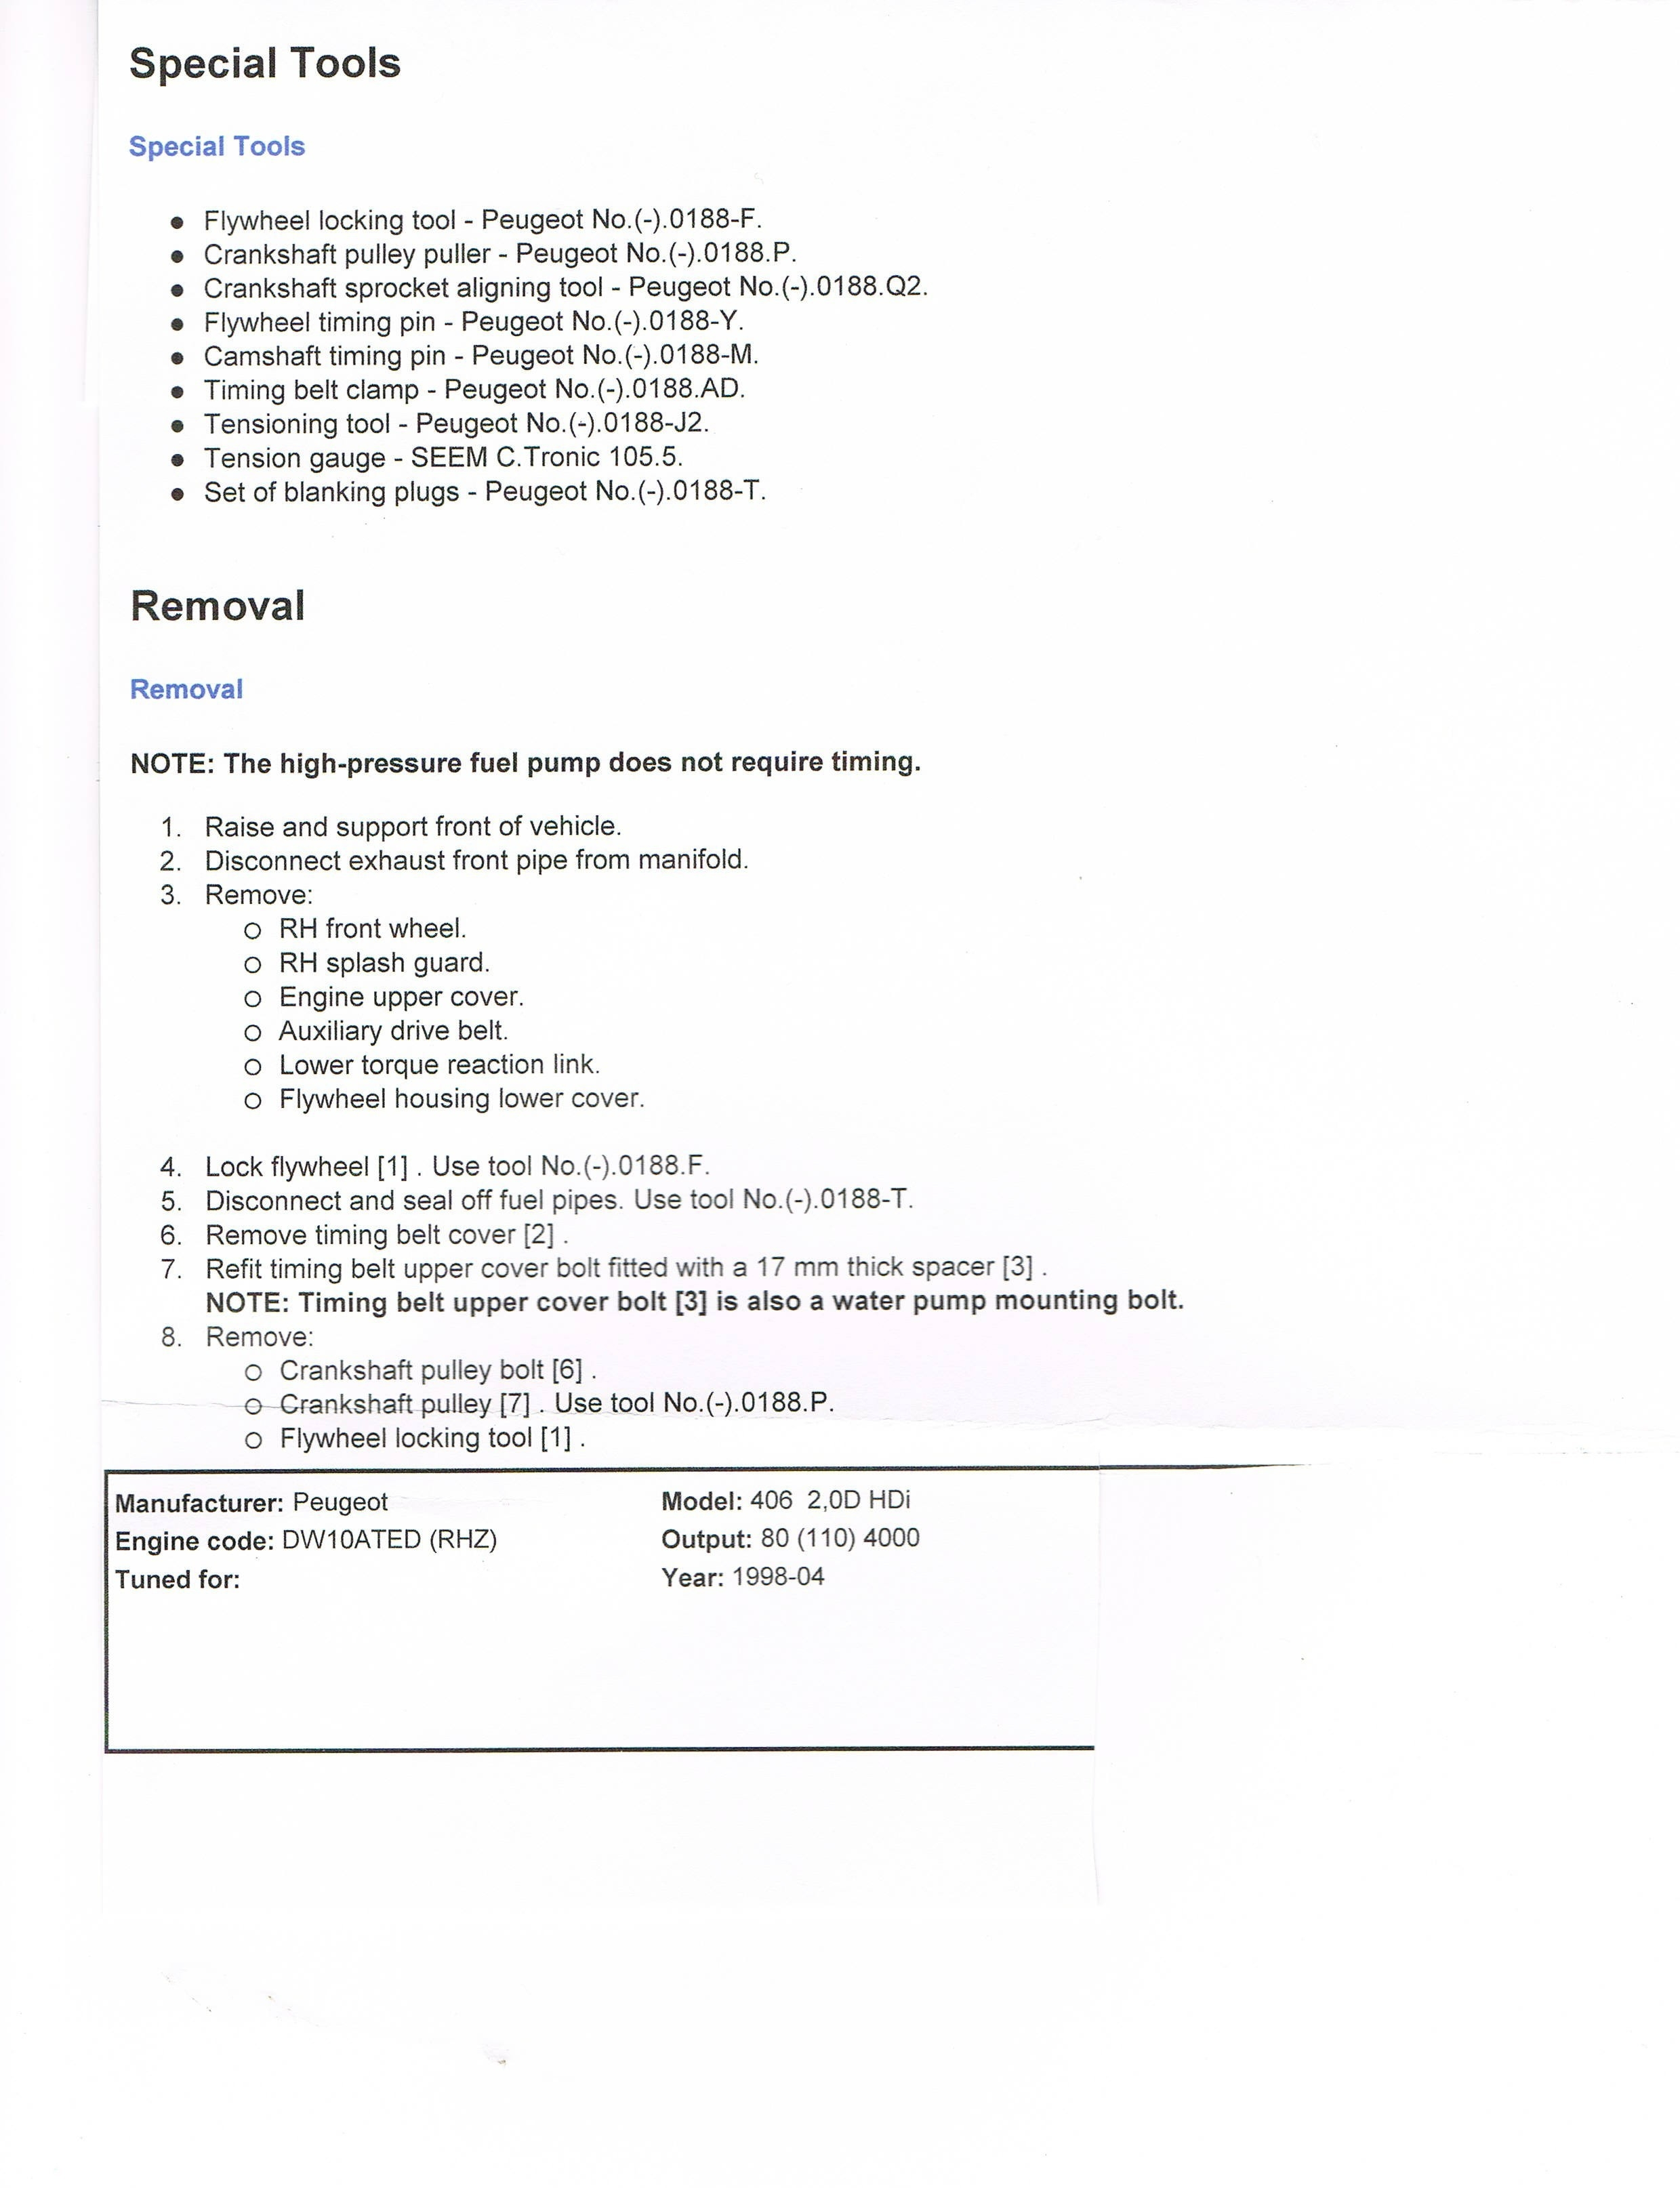 Talent Resume Template - Employee Verification Letter New Cfo Resume Template Inspirational